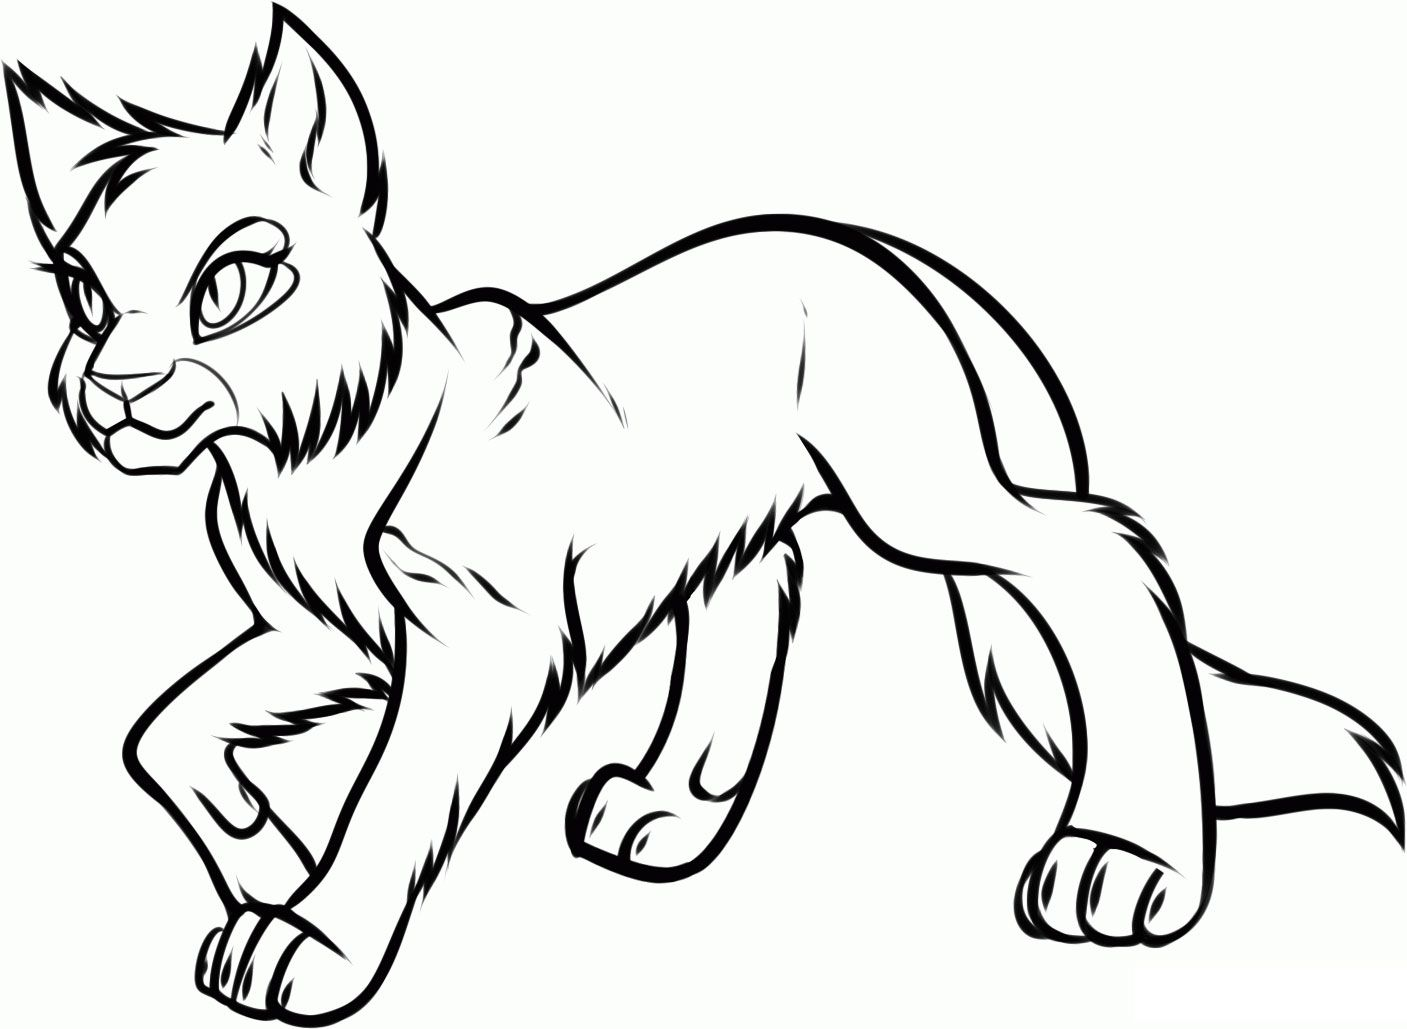 Freecatcoloringforadultsg coloring pages